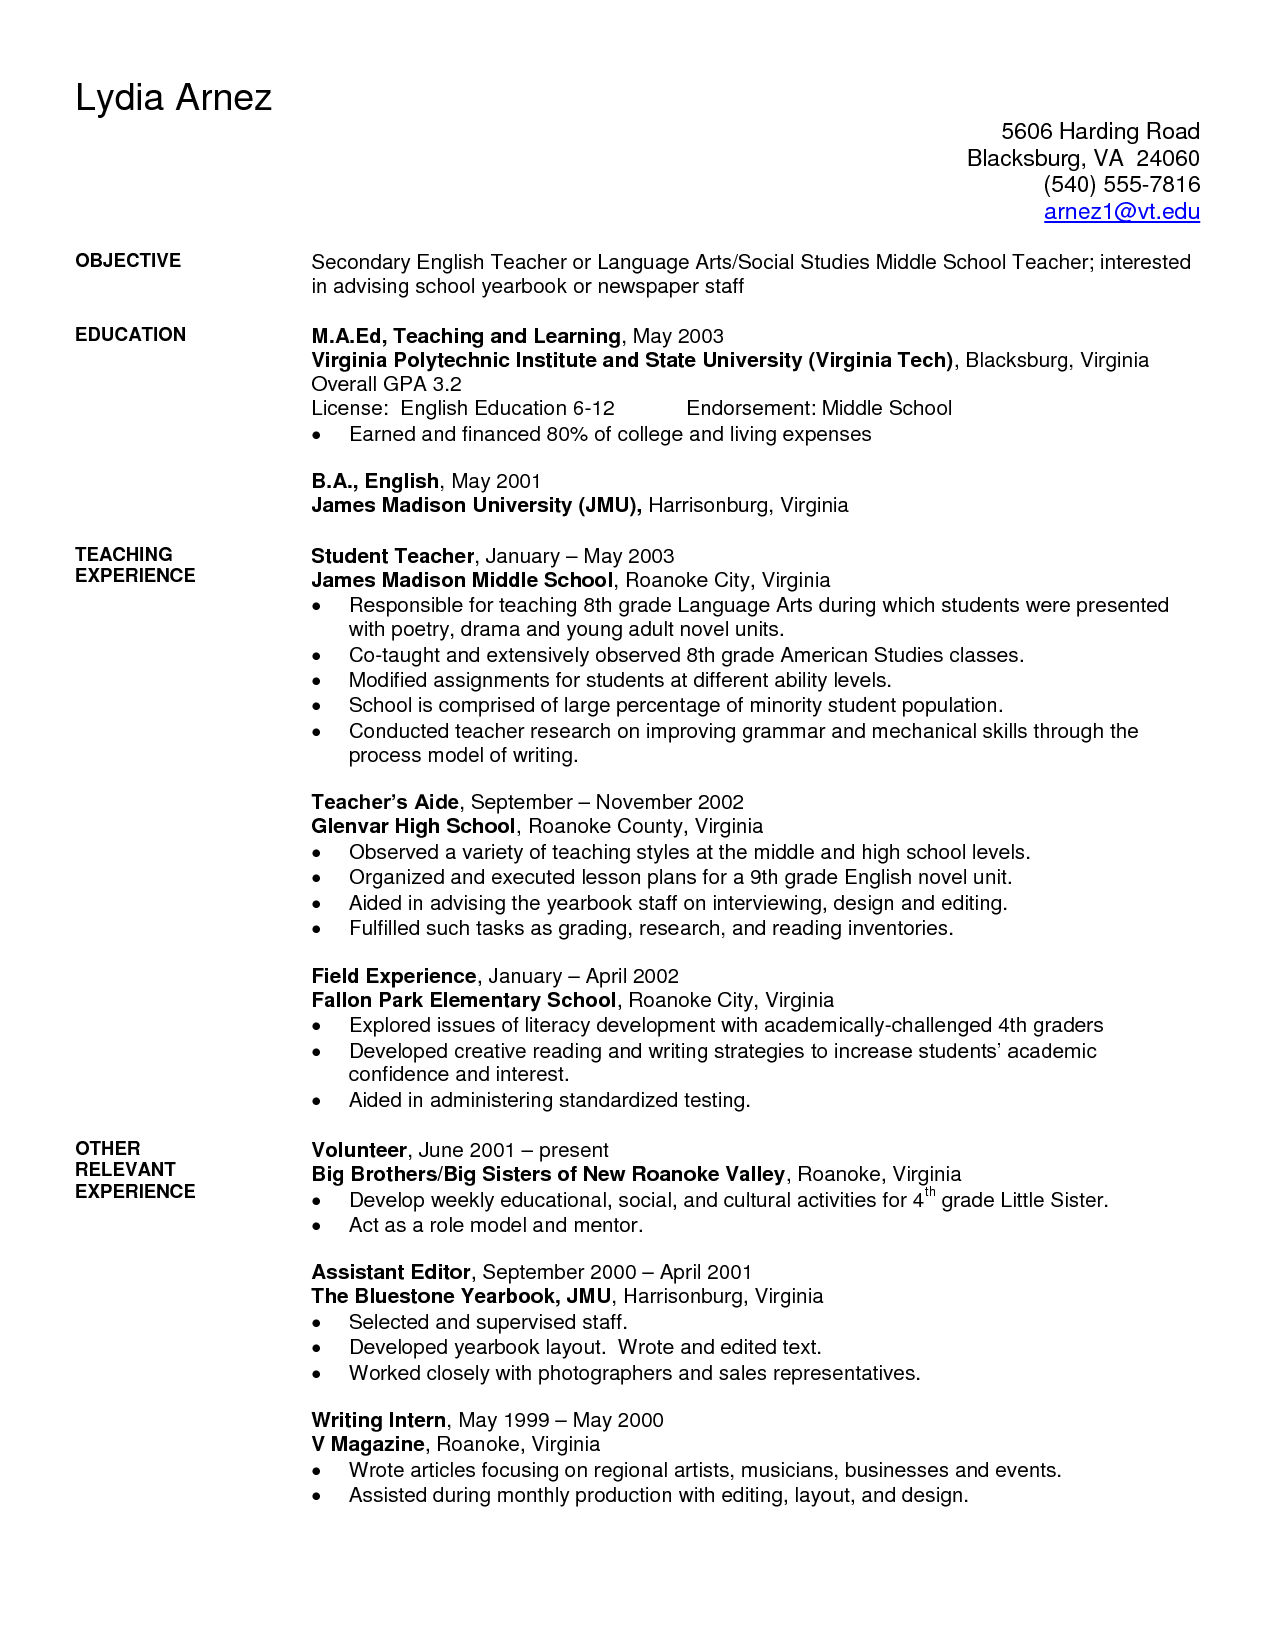 Instructor Resume Samples | Art Teacher Resume Examples Sample Secondary Teacher Resume